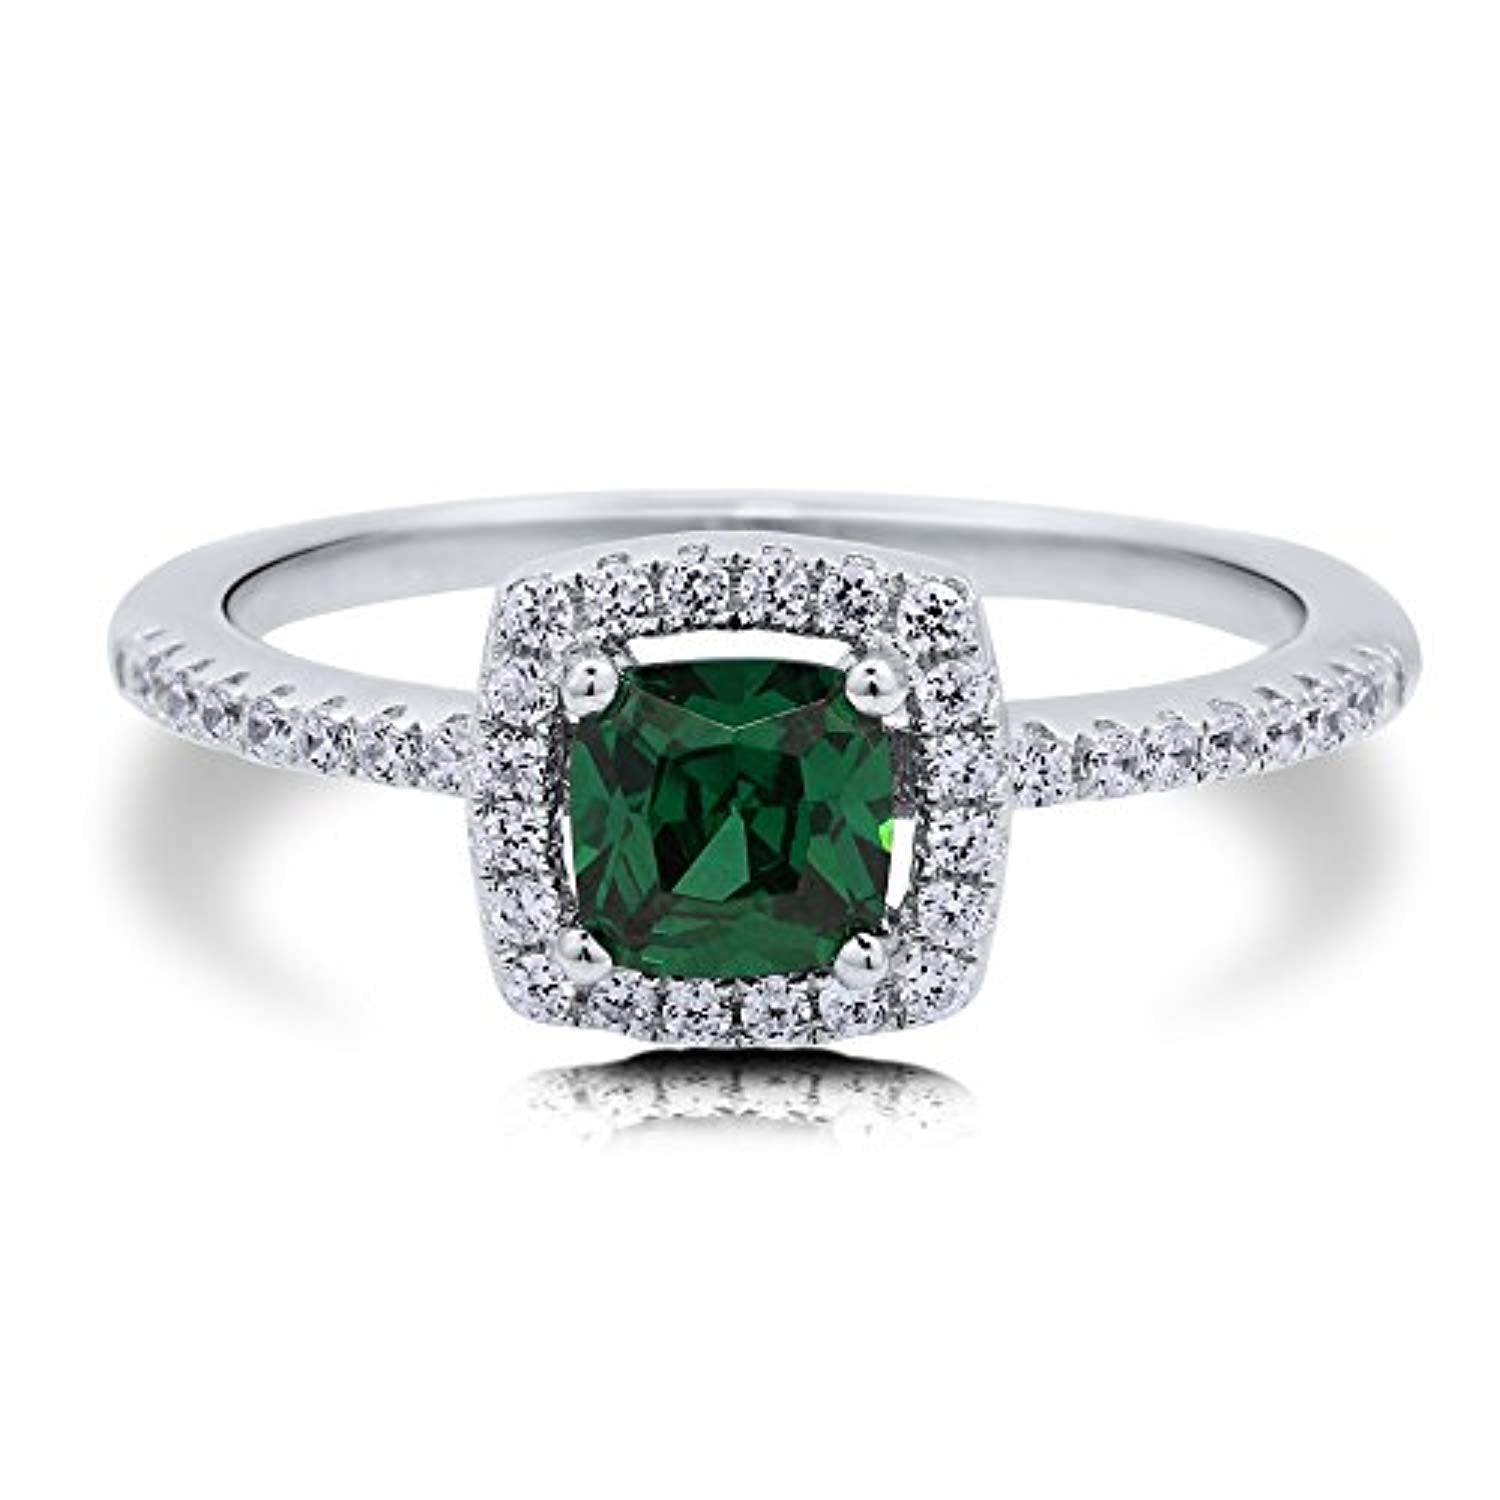 Rhodium Plated Sterling Silver Simulated Emerald Cushion Cut Cubic Zirconia CZ Halo Promise Engagement Ring